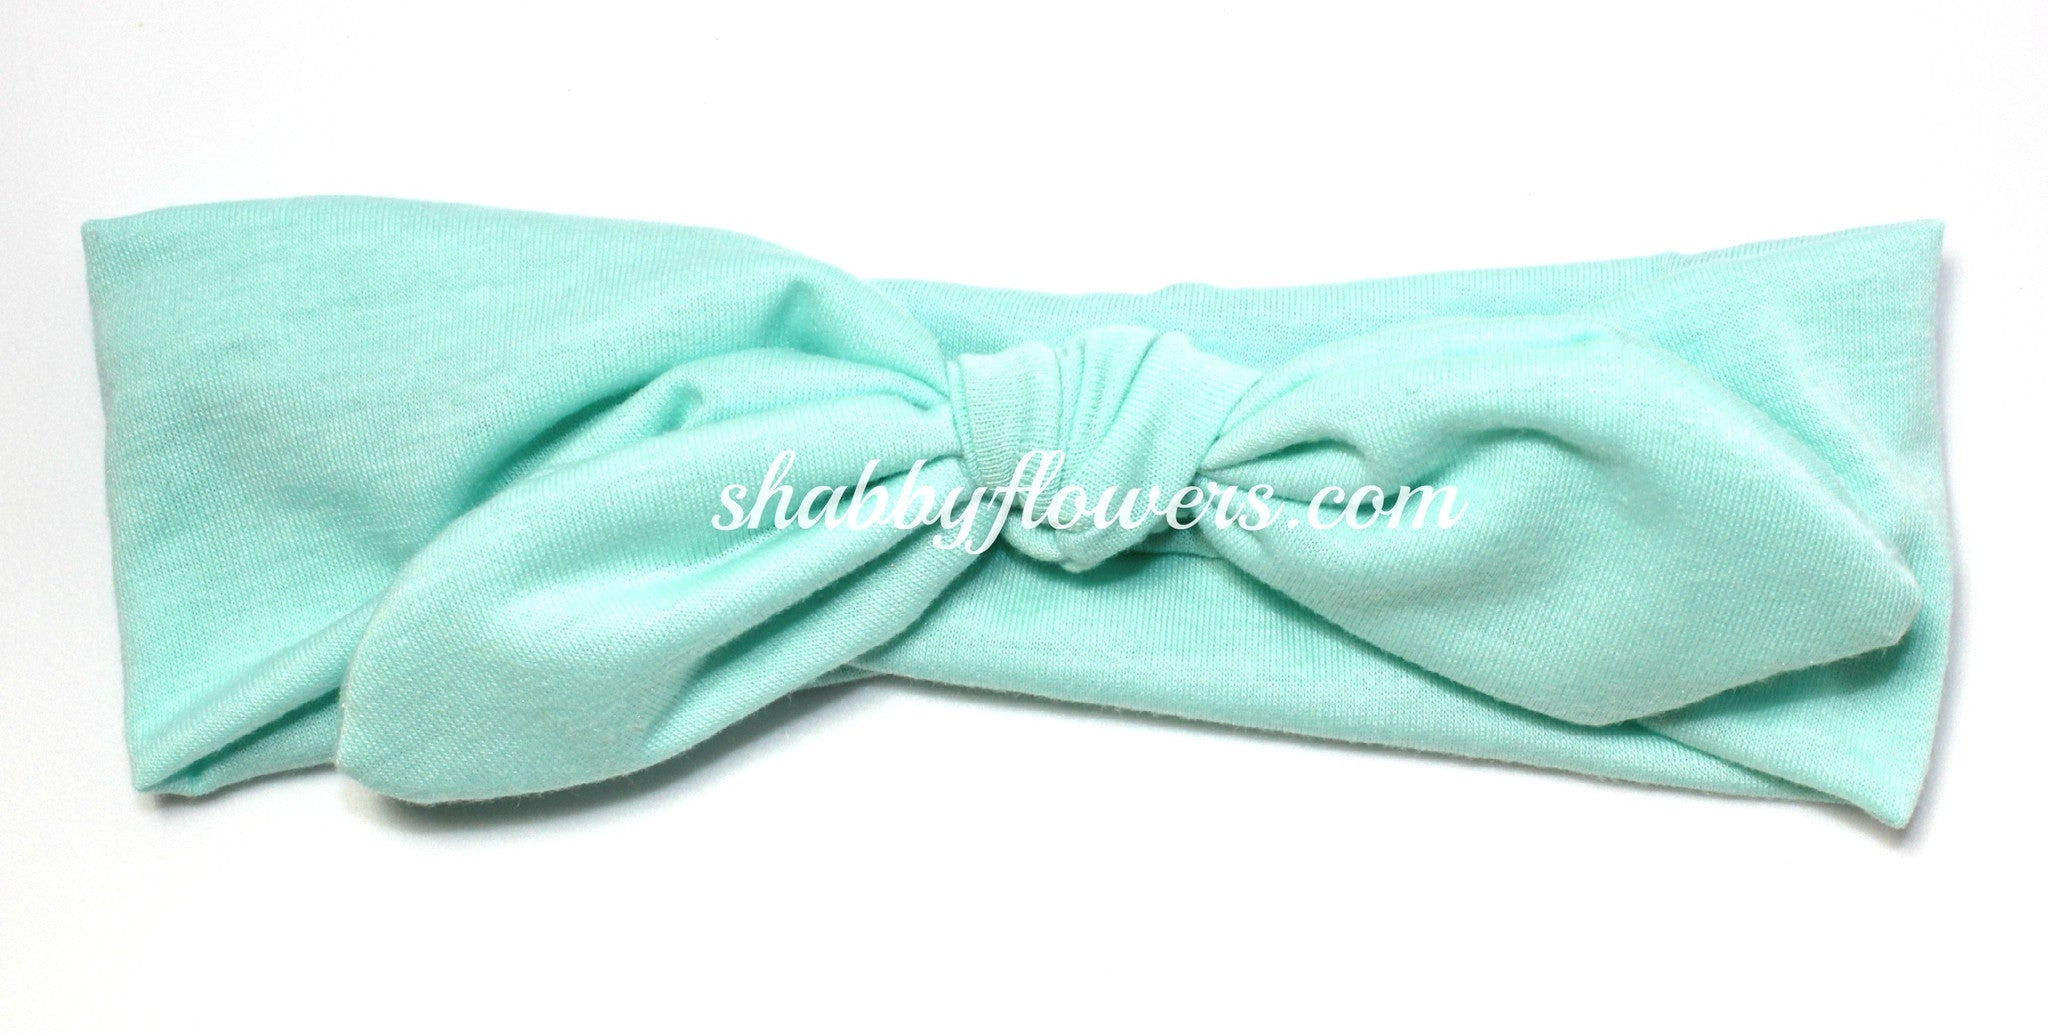 Knot Headband in Aqua - Regular - shabbyflowers.com